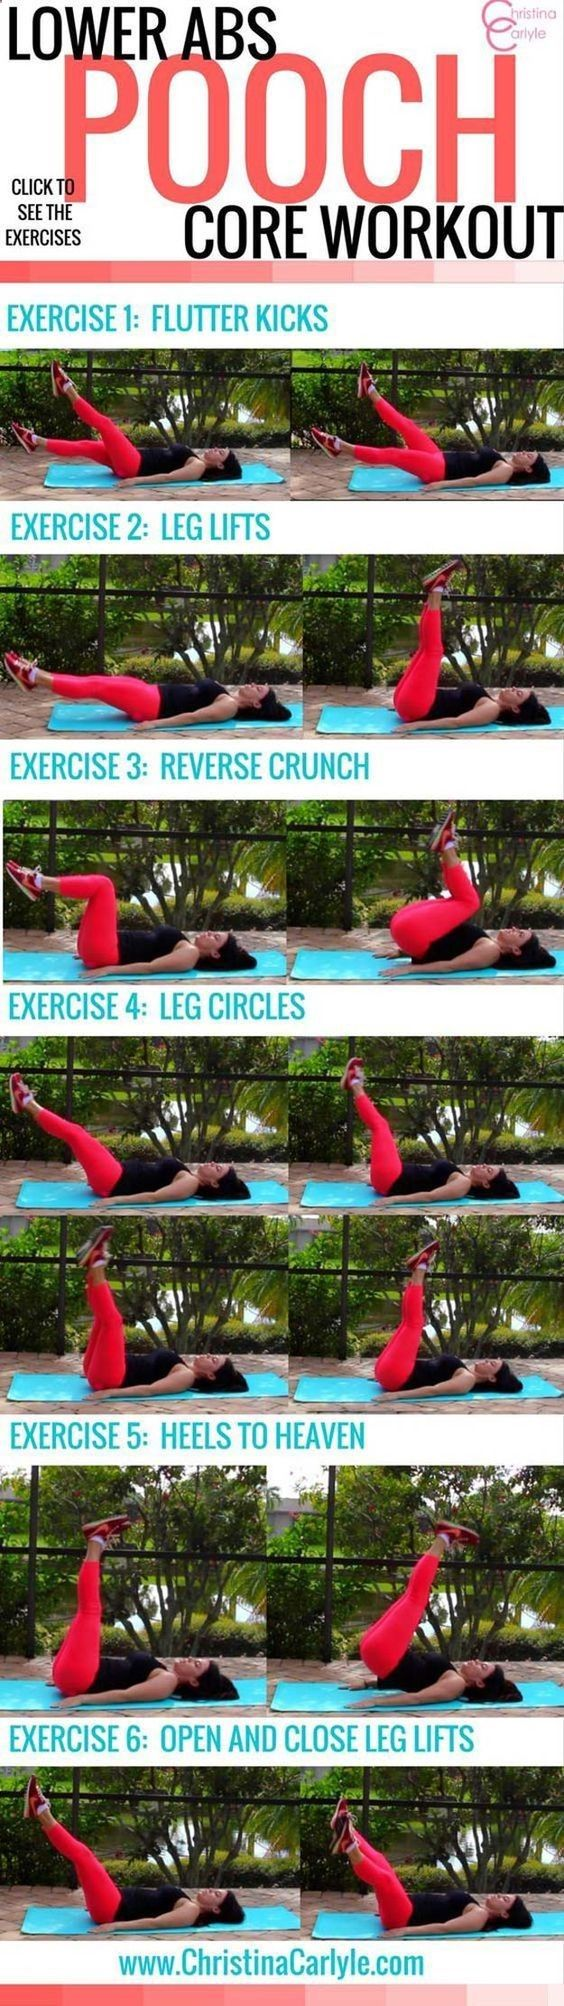 Belly Fat Burner Workout - Best Exercises for Abs - Workouts for Women - Lower Ab Exercises - Best Ab Exercises And Ab Workouts For A Flat Stomach, Increased Health Fitness, And Weightless. Ab Exercises For Women, For Men, And For Kids. Great With A Diet To Help With Losing Weight Get the Complete Lean Belly Breakthrough System